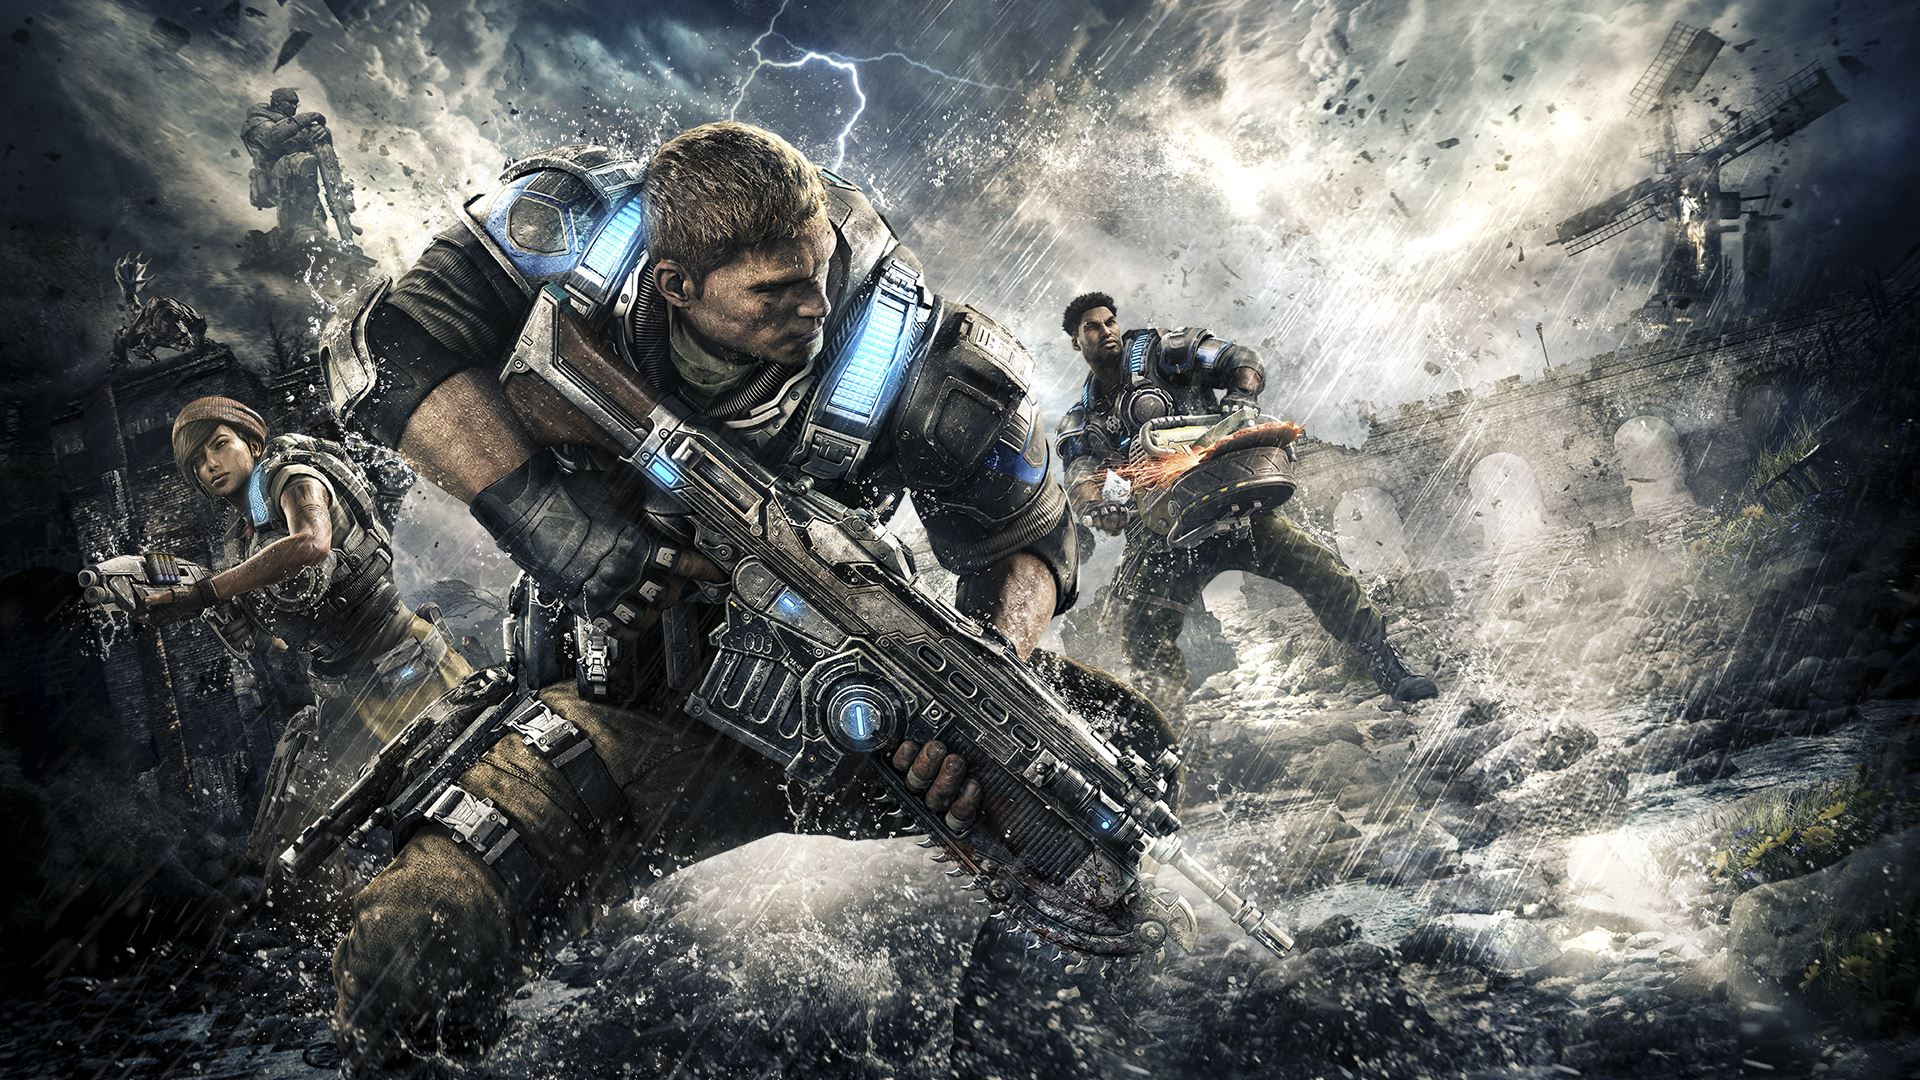 Let's Play Gears of War 4 PC at 4K 60fps